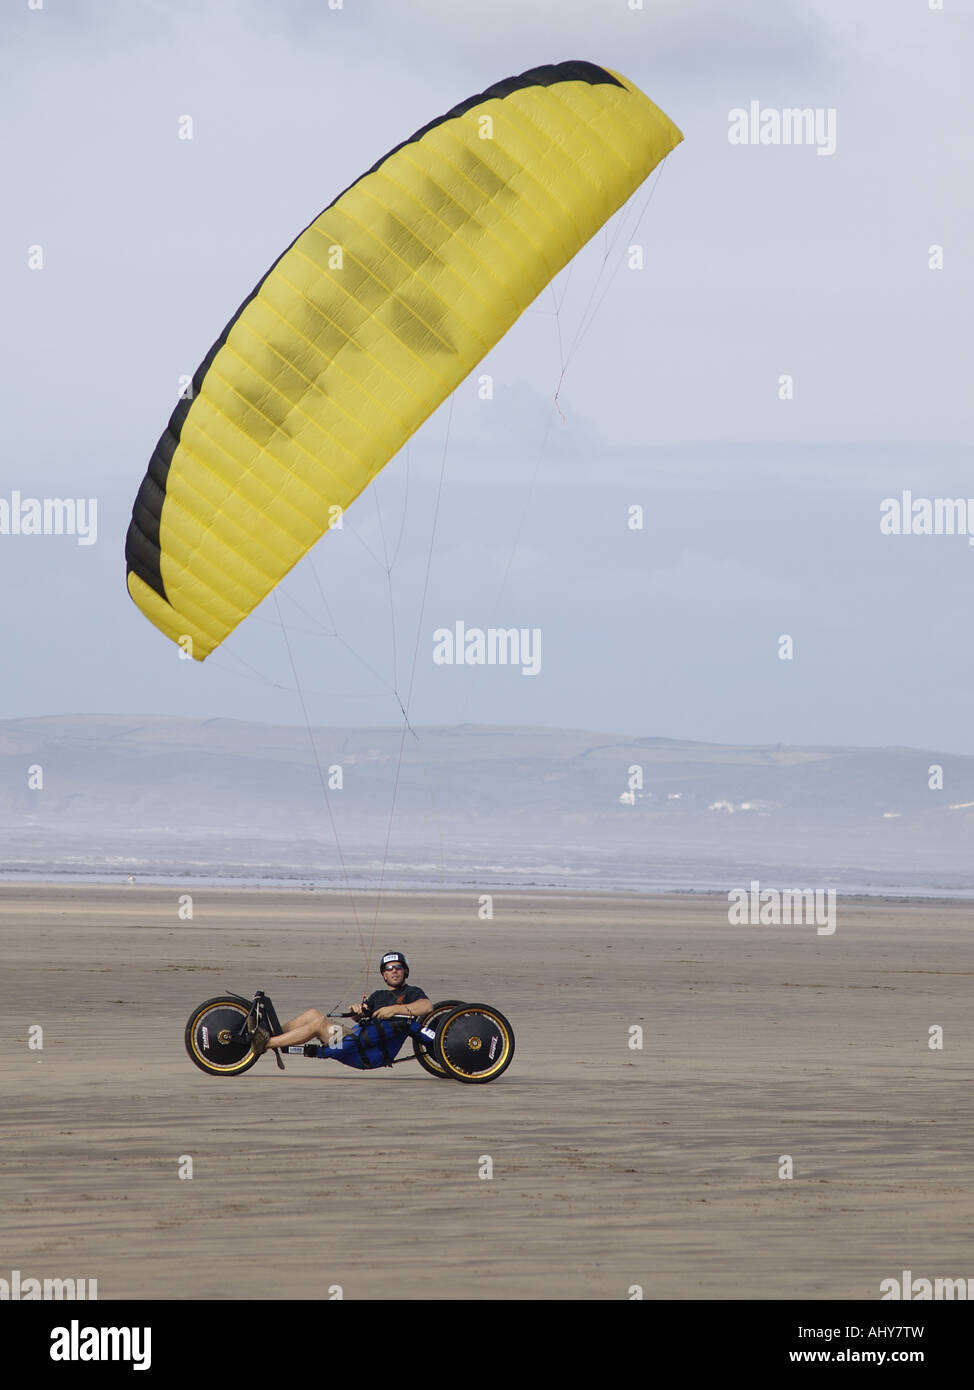 Parakarter directing his yellow kite, windy day on a sandy beach, upright Stock Photo